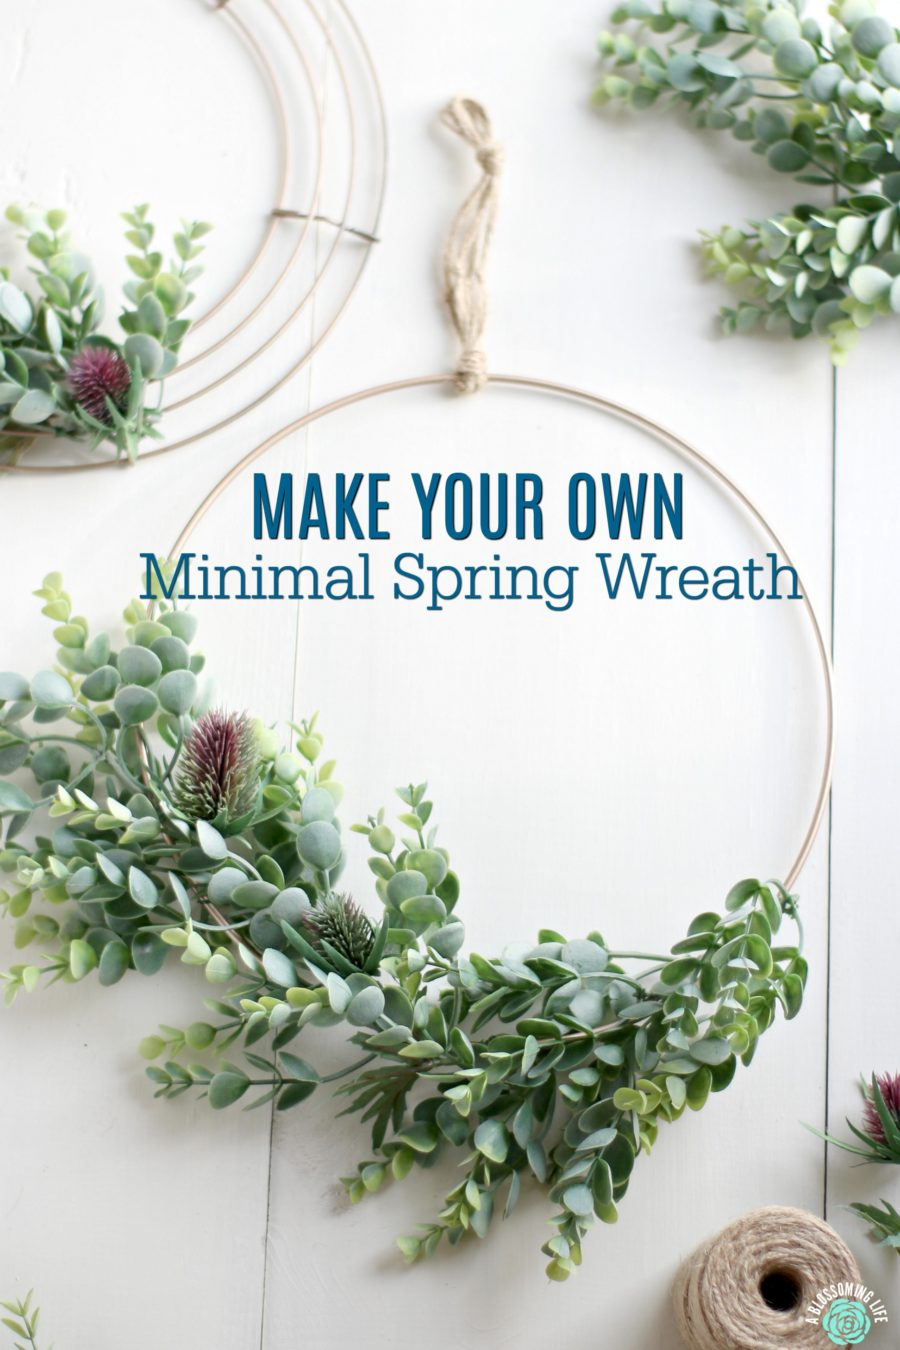 Make Your Own Minimal Spring Wreath